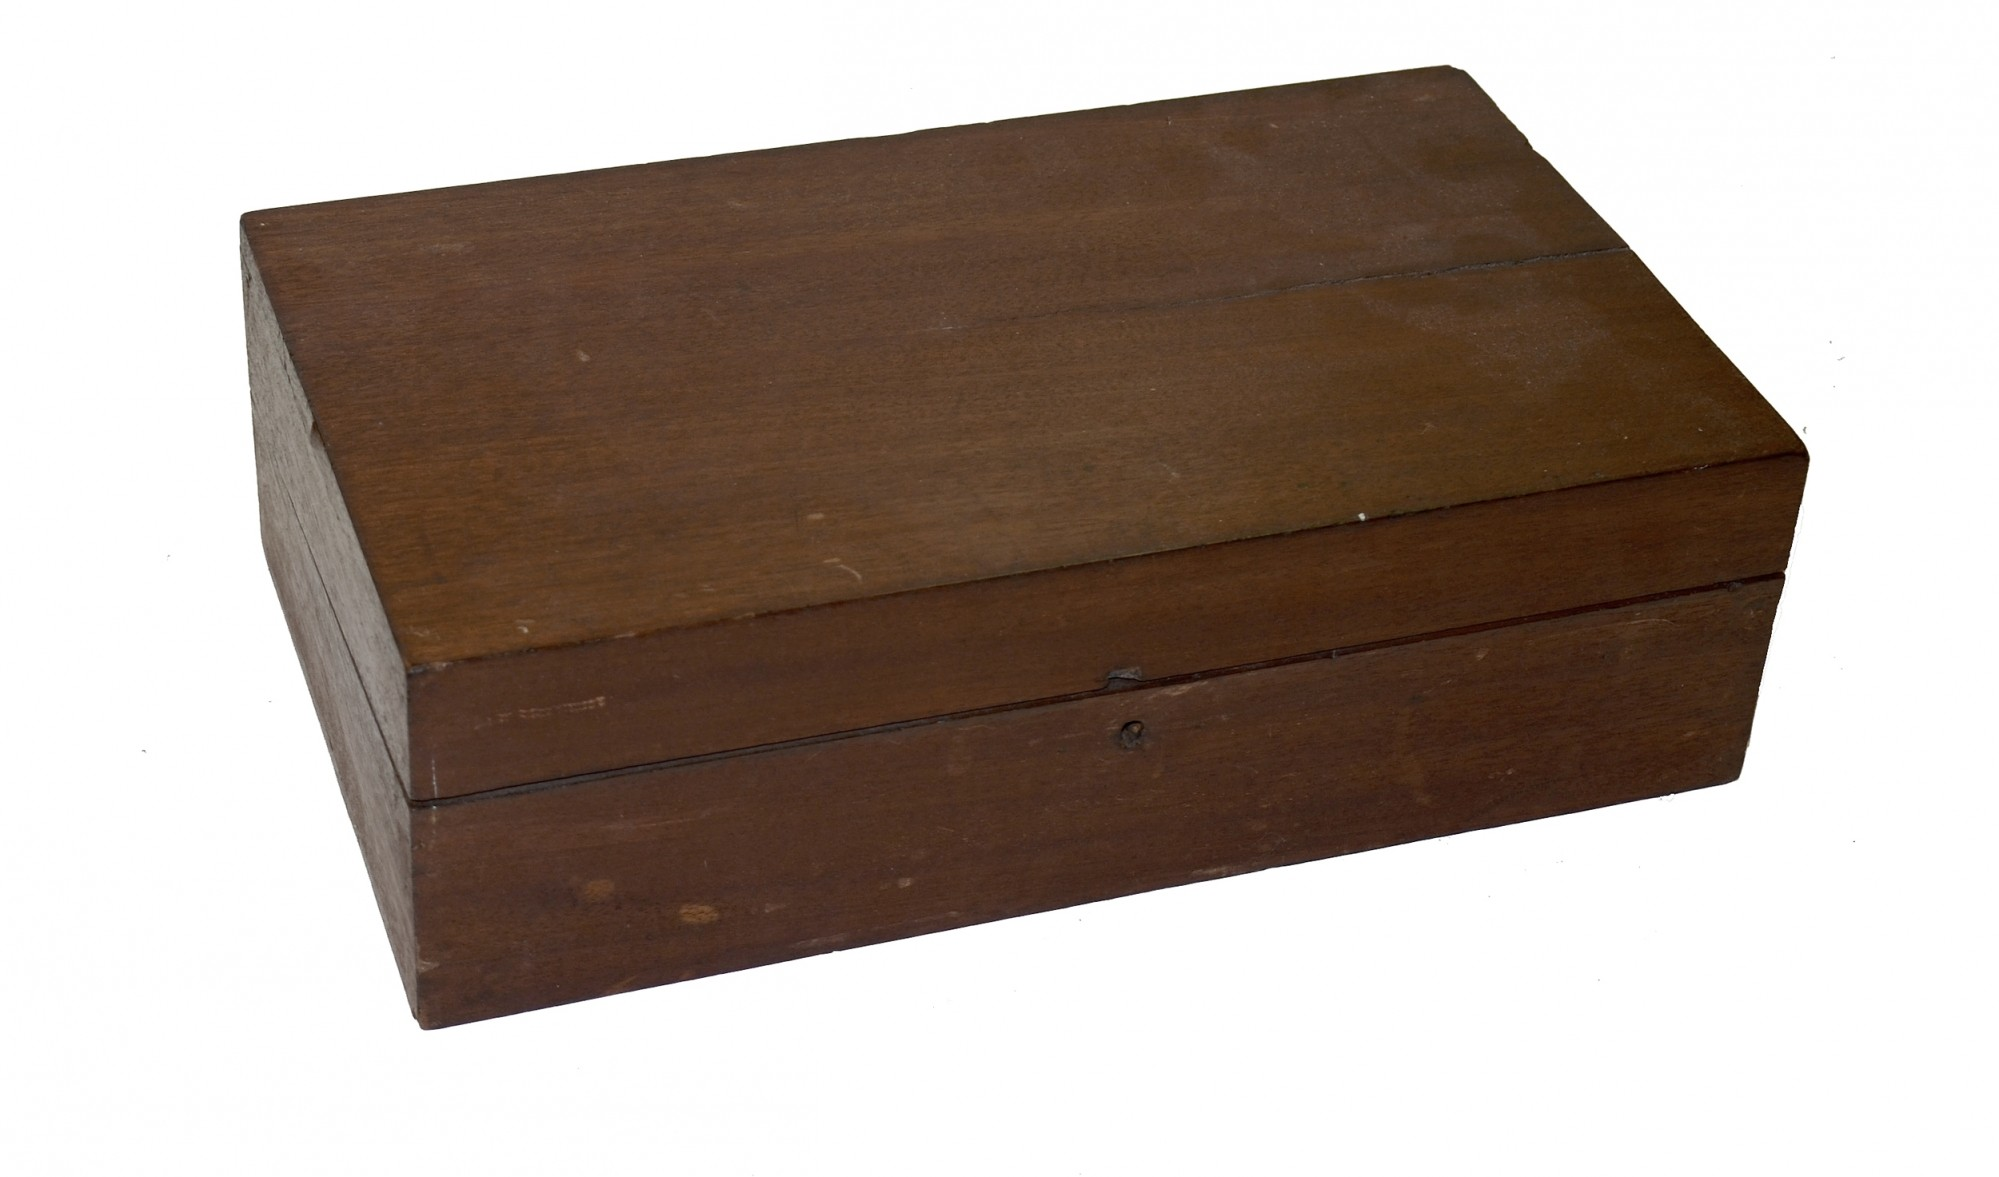 CIVIL WAR ERA LAP WRITING DESK